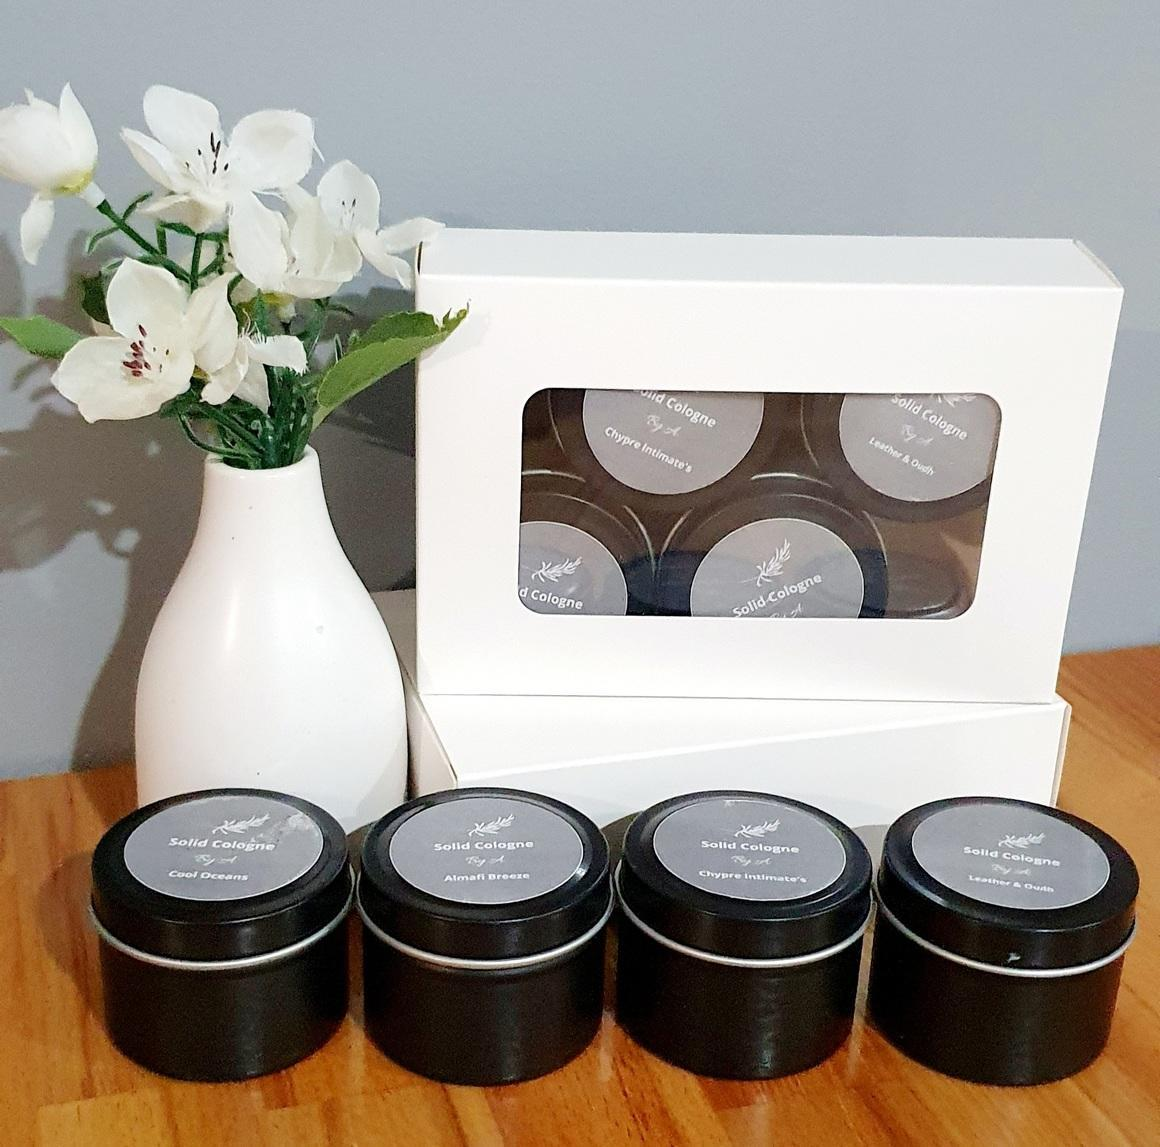 Solid Cologne Gift Pack   Trada Marketplace